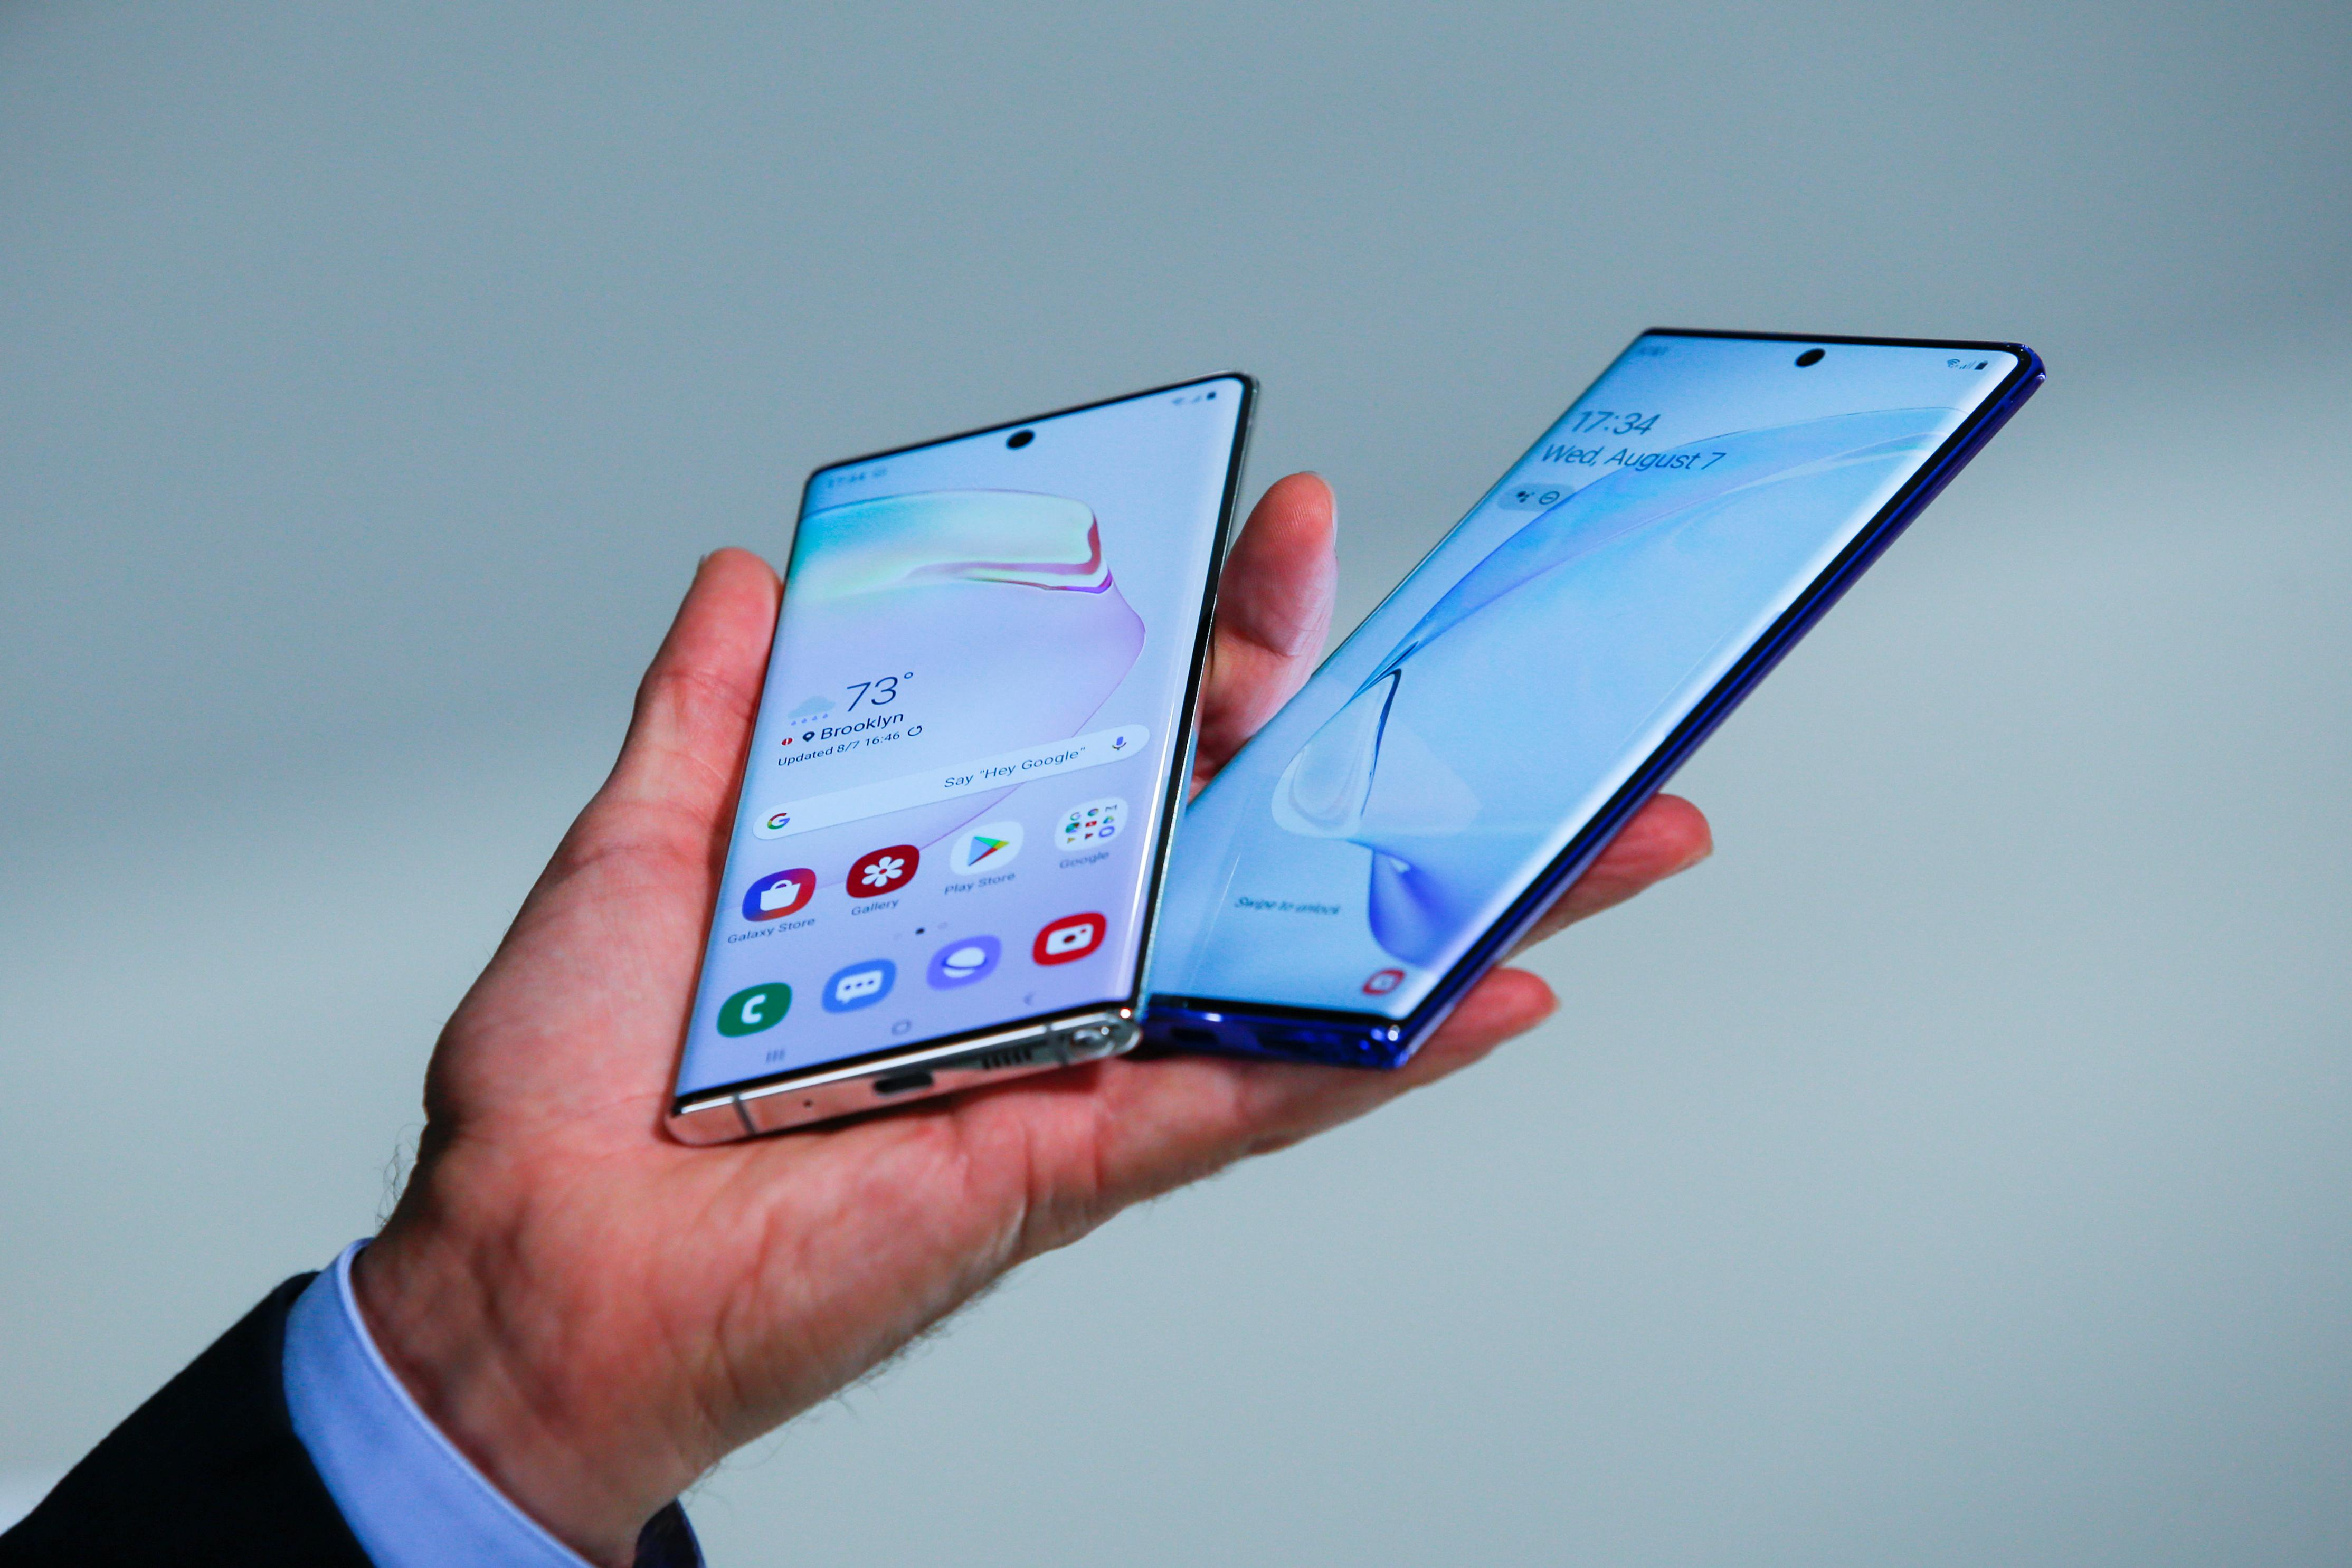 Samsung's new Note takes on Huawei in selfie beauty pageant - Reuters